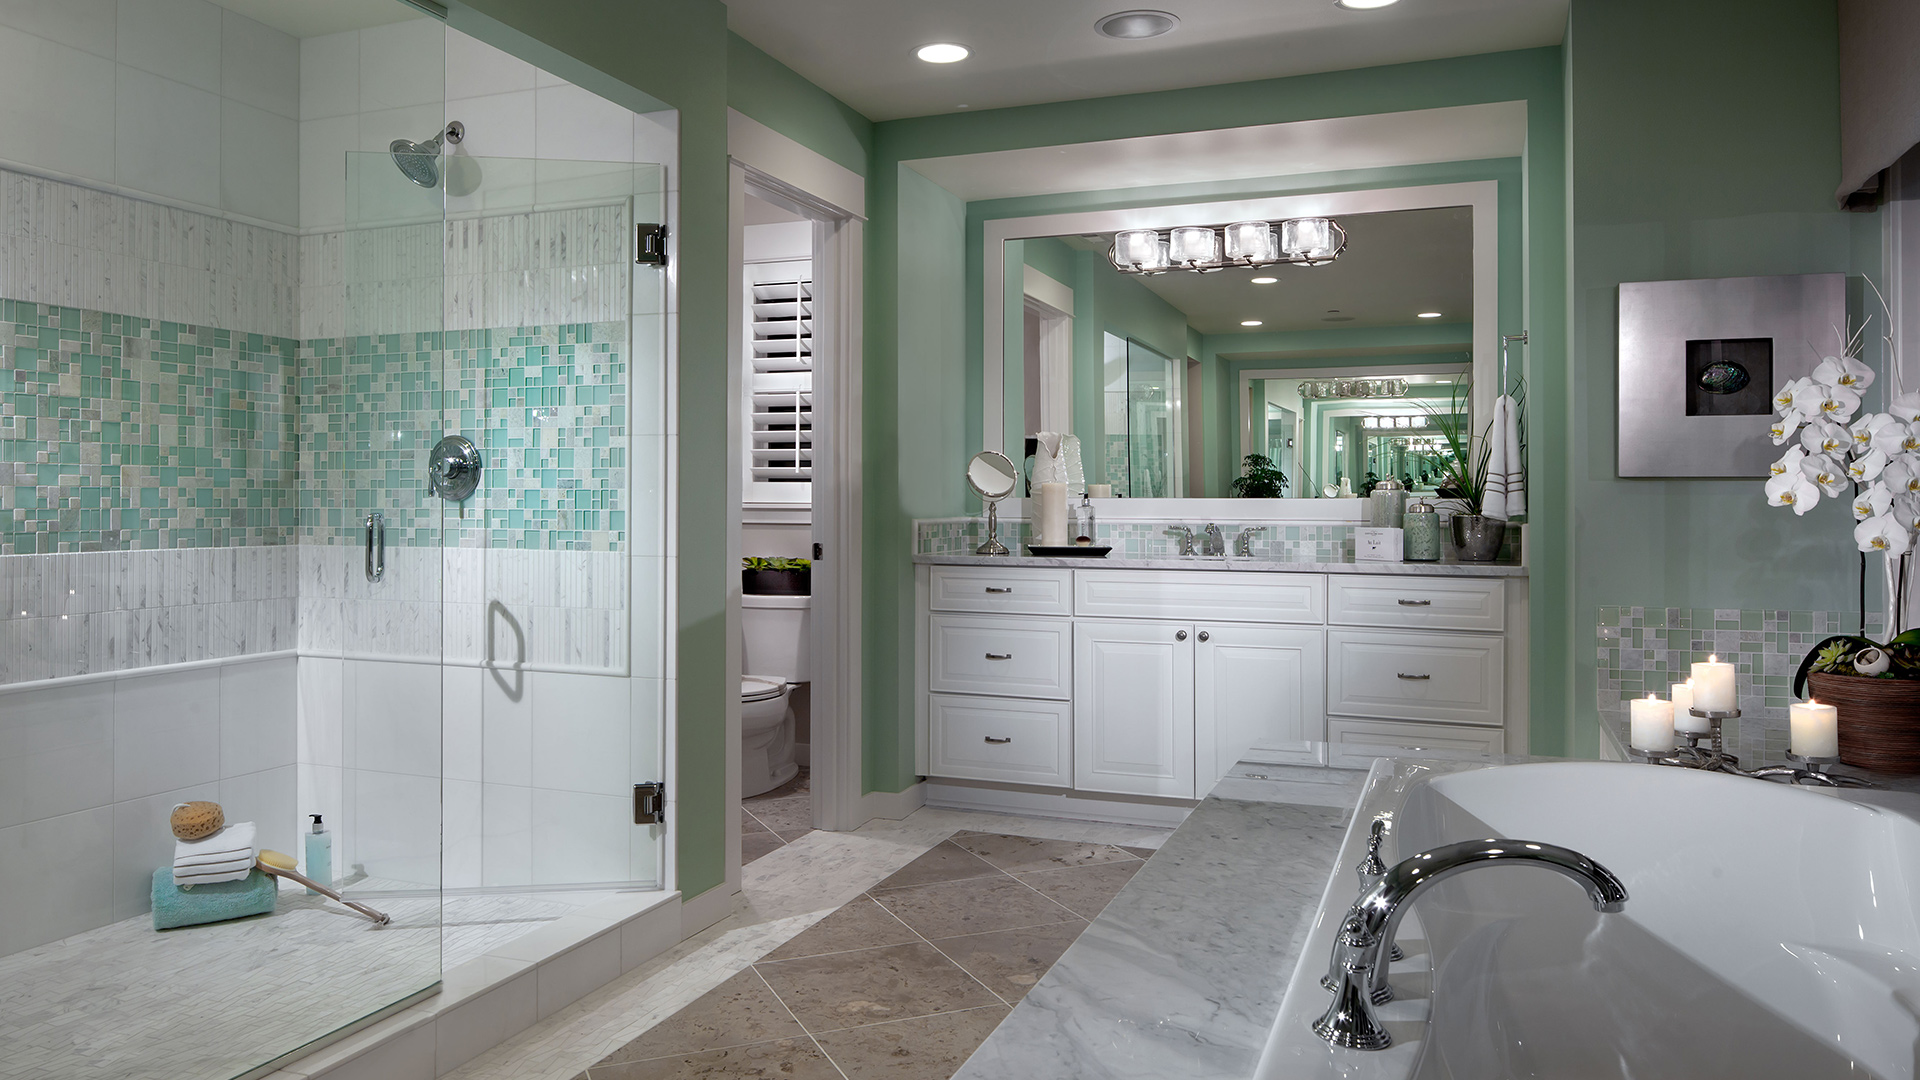 Bothell wa new homes for sale pipers glen for Bathroom remodel yakima wa